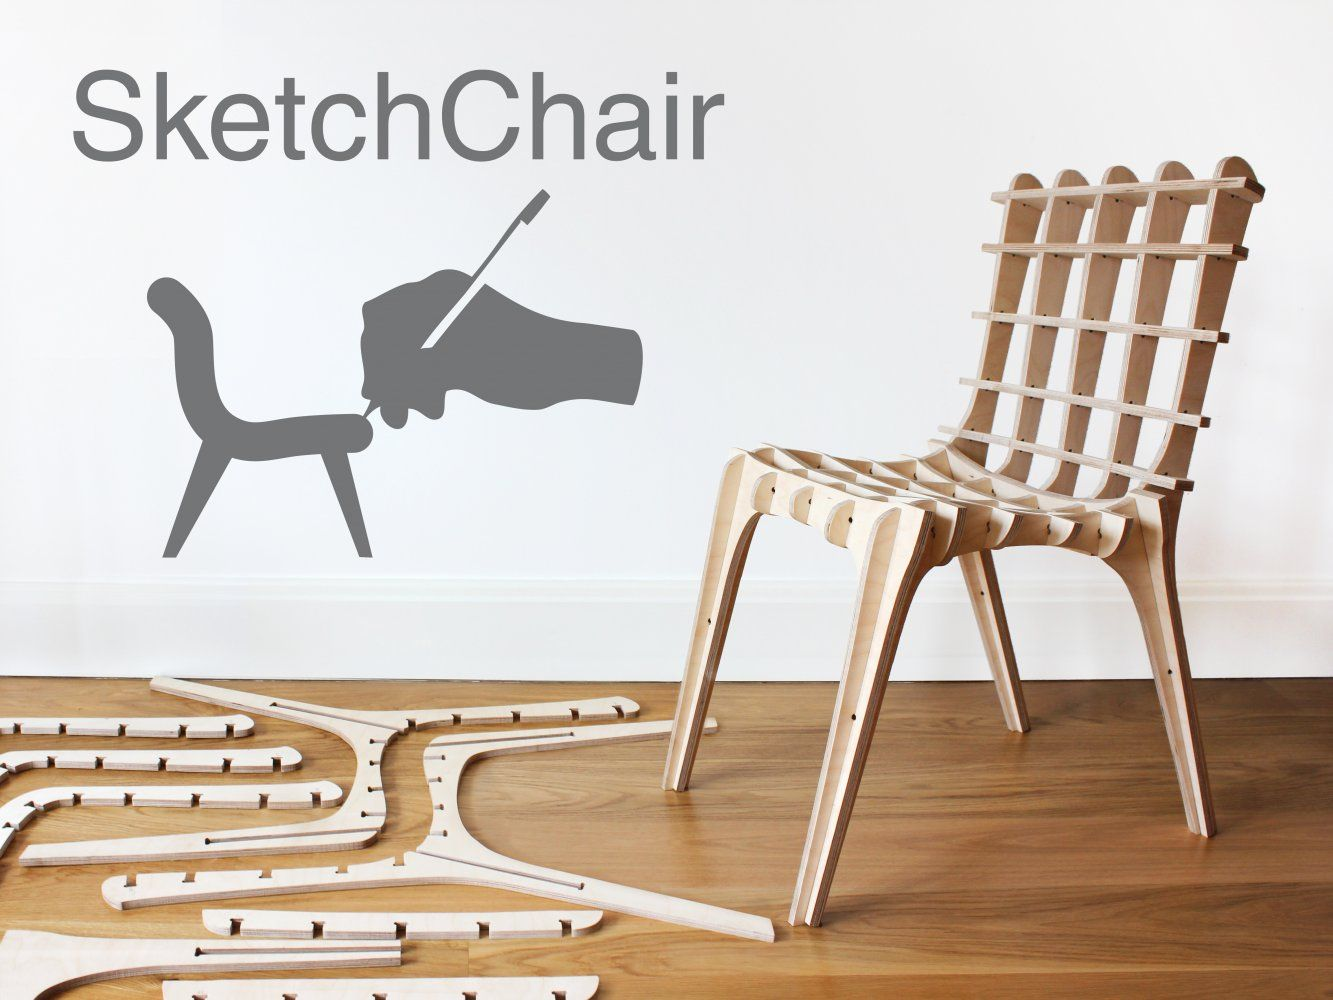 cut furniture plywood | roomeon blog - sketch chair: software-tool